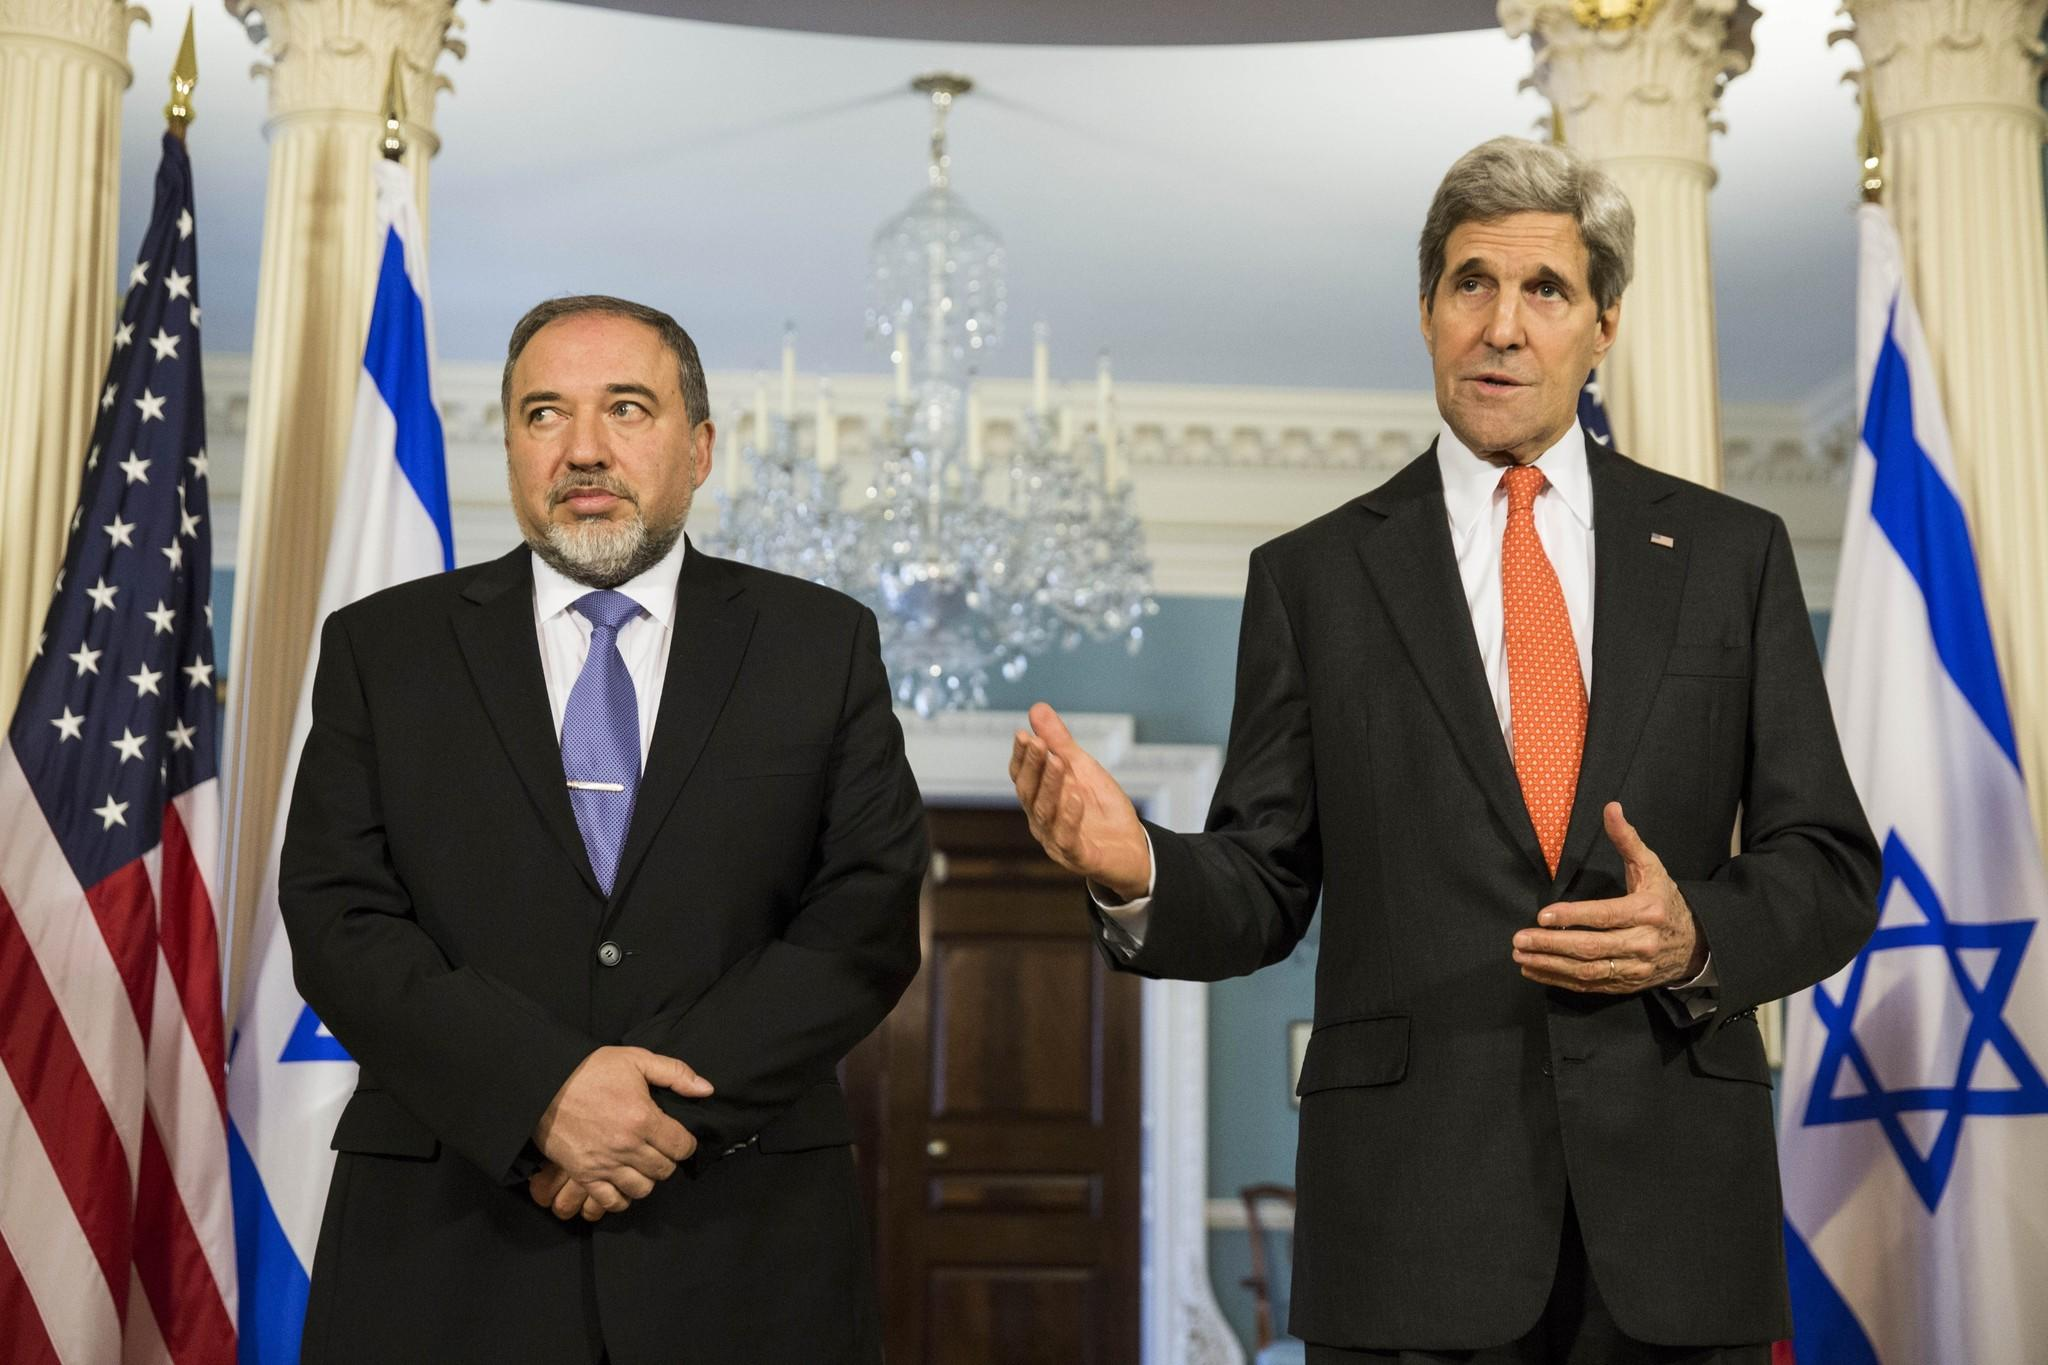 Israeli Foreign Minister Avigdor Lieberman, left, and Secretary of State John Kerry speak to the media before meeting privately at the U.S. State Department.